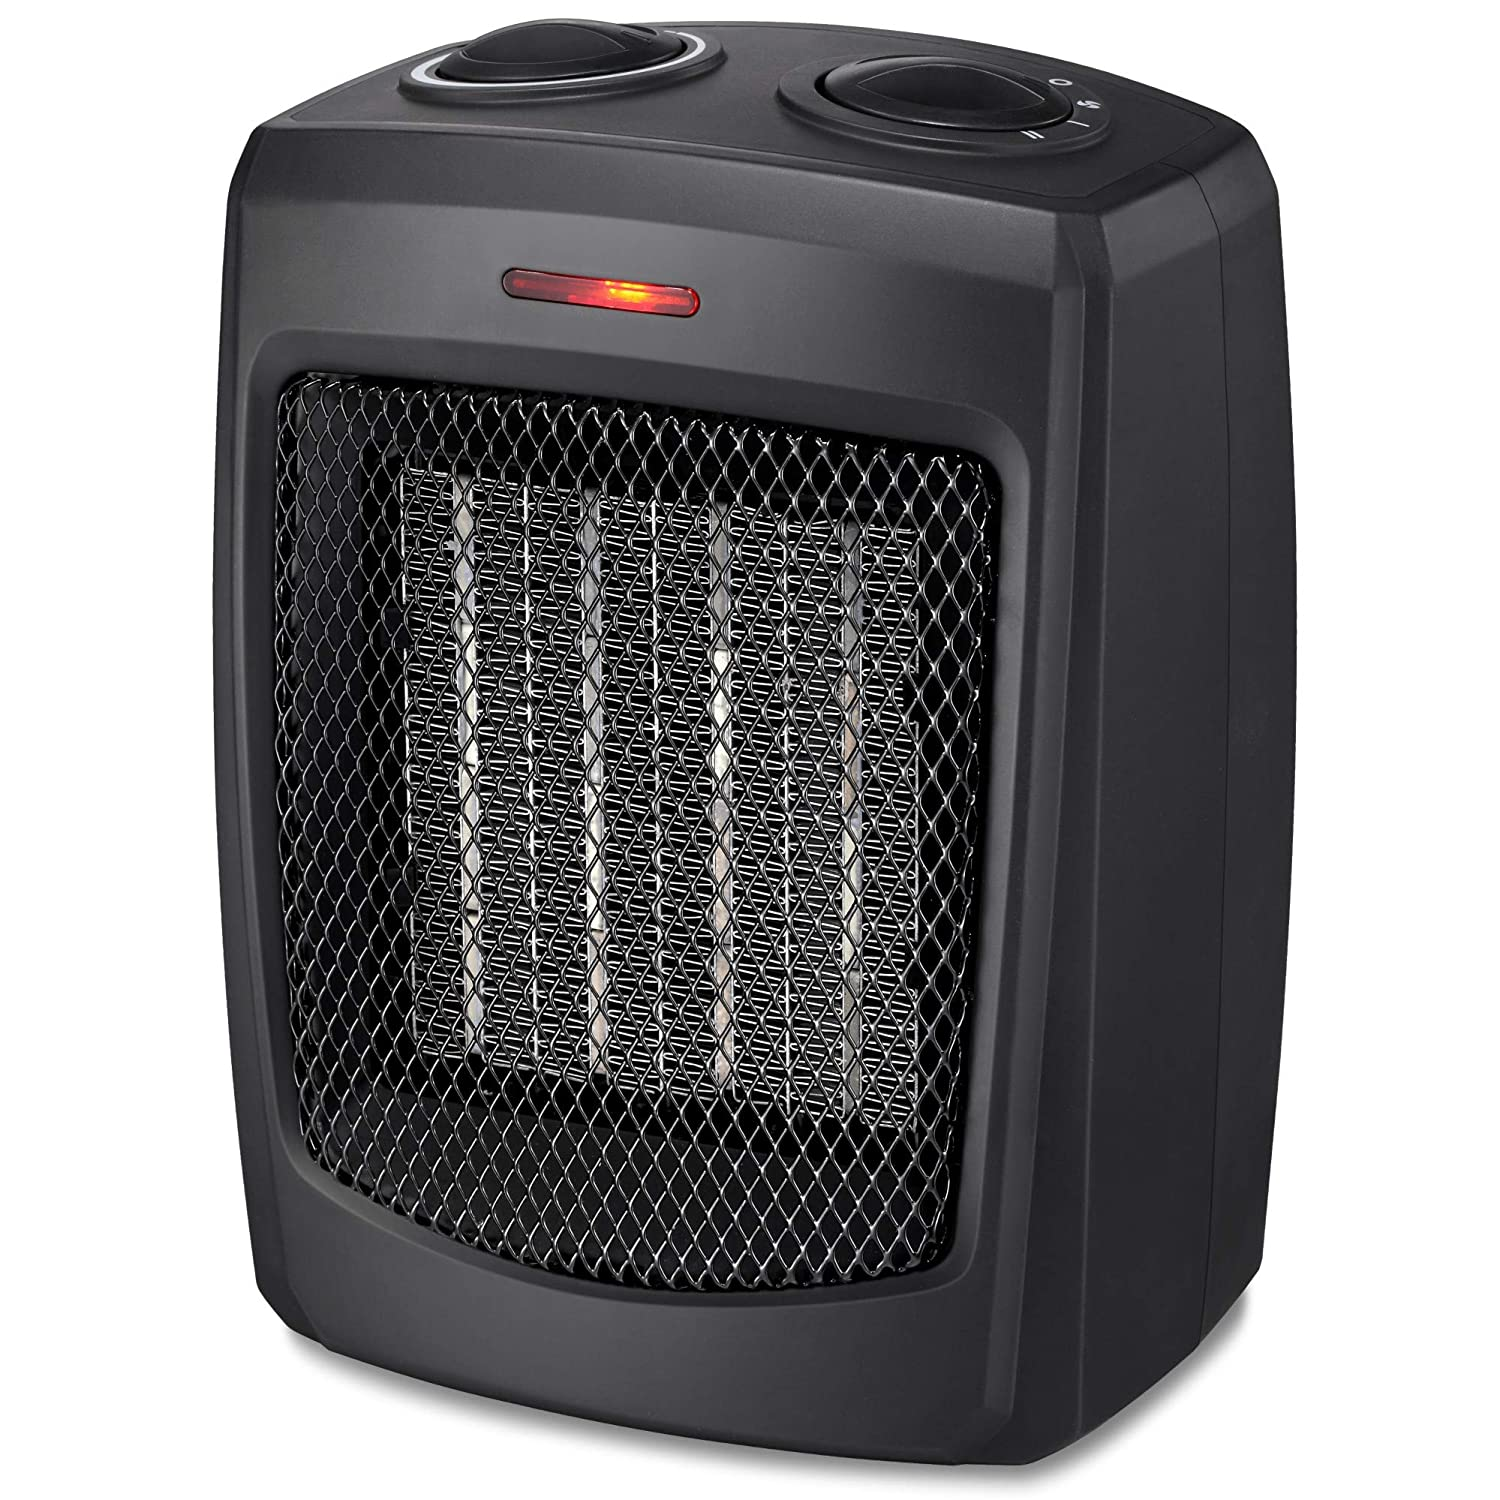 HOME_CHOICE Personal Ceramic Space Heater Electric Heater with Adjustable Thermostat Small Portable Heater Fan for Office Desktop Home Bedroom,750W 1500W